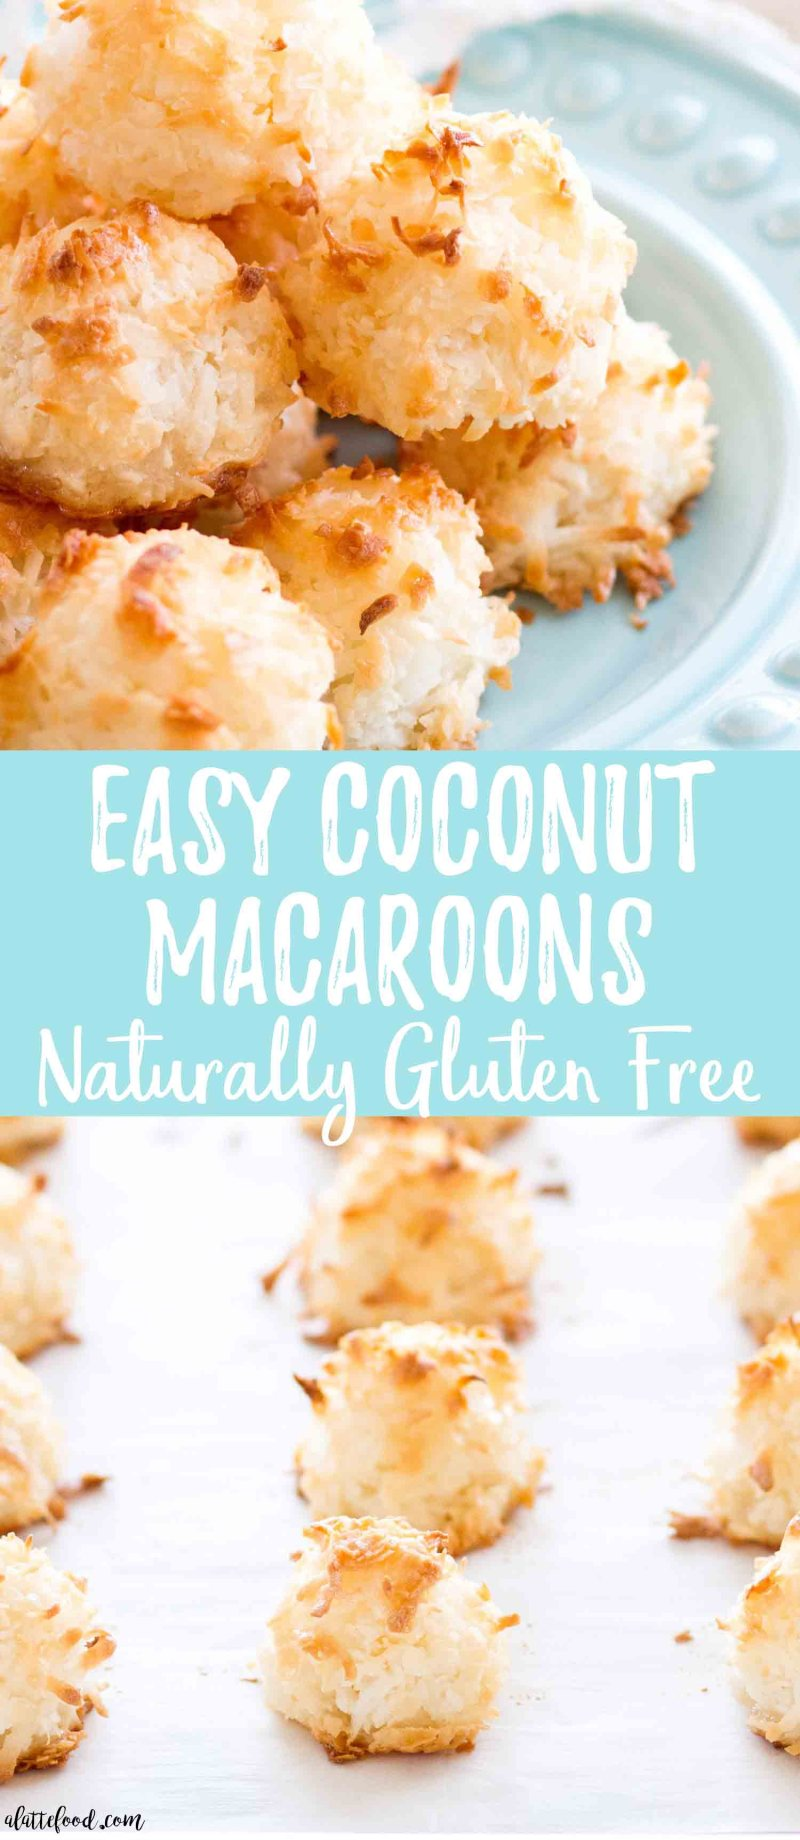 These easy homemade Coconut Macaroons are so simple to make and taste delicious! This Coconut Macaroon recipe has only 7 ingredients, making it the easiest gluten-free dessert! Plus, a step-by-step video below! chewy coconut macaroons, how to make macaroons, coconut macaroons without condensed milk